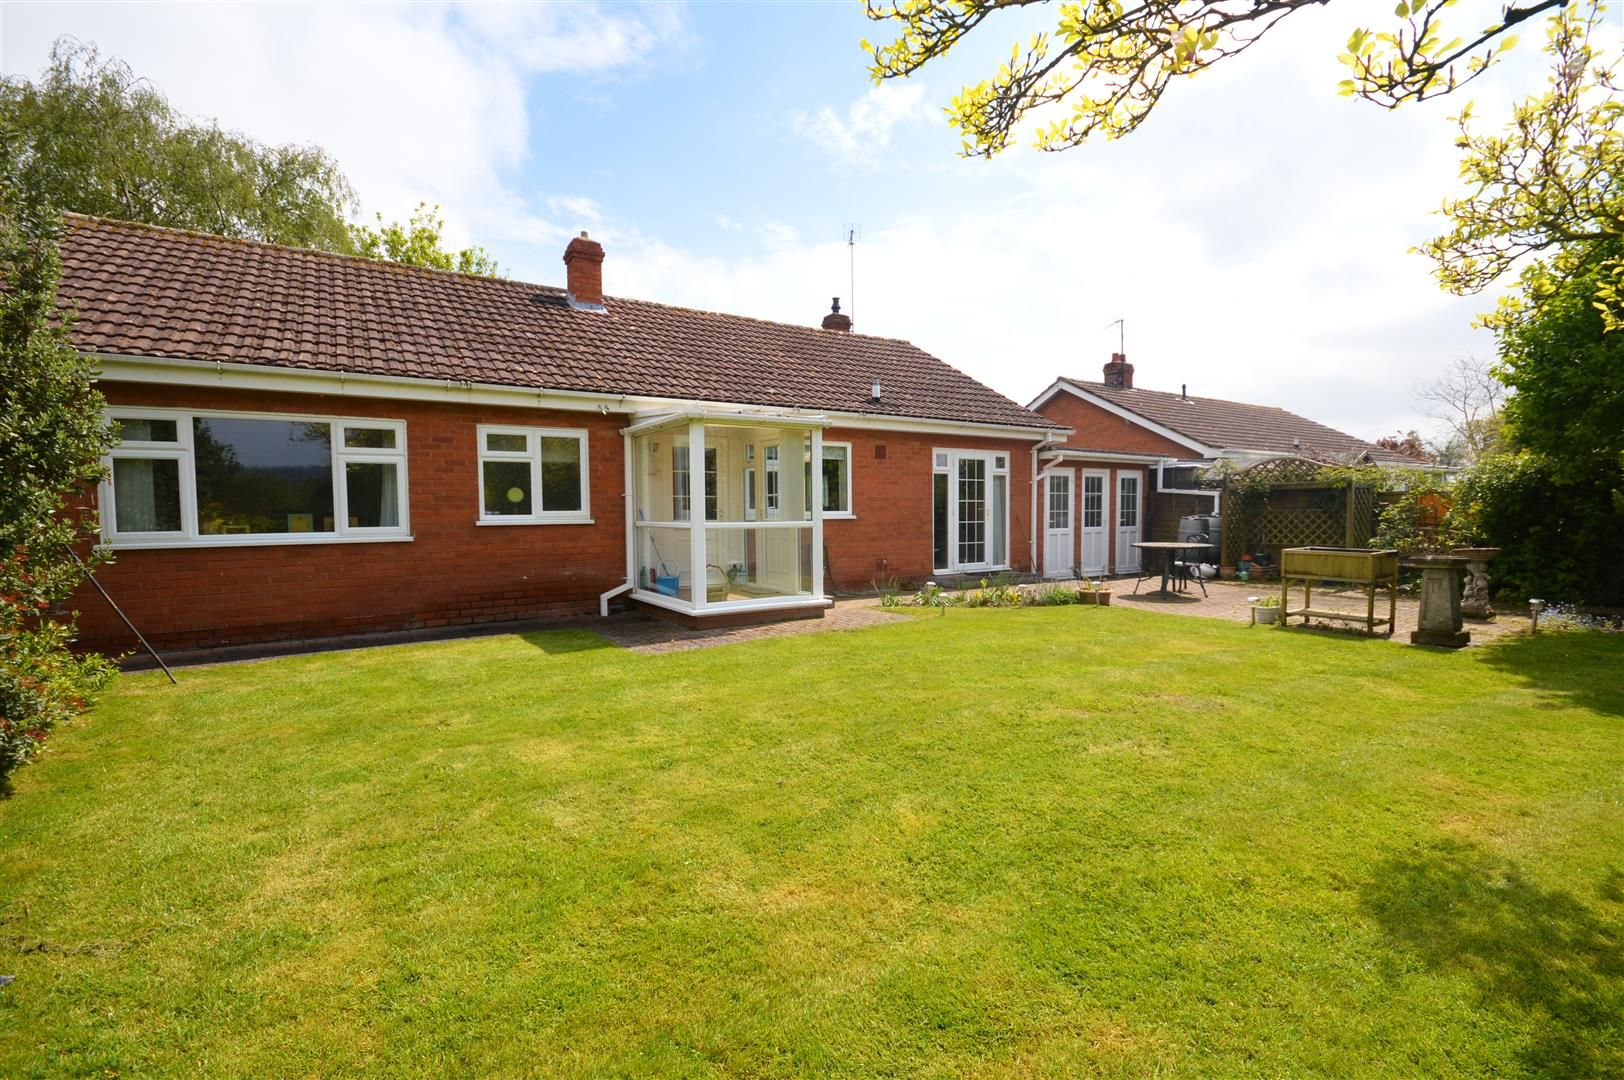 3 bed detached bungalow for sale in Burghill, HR4